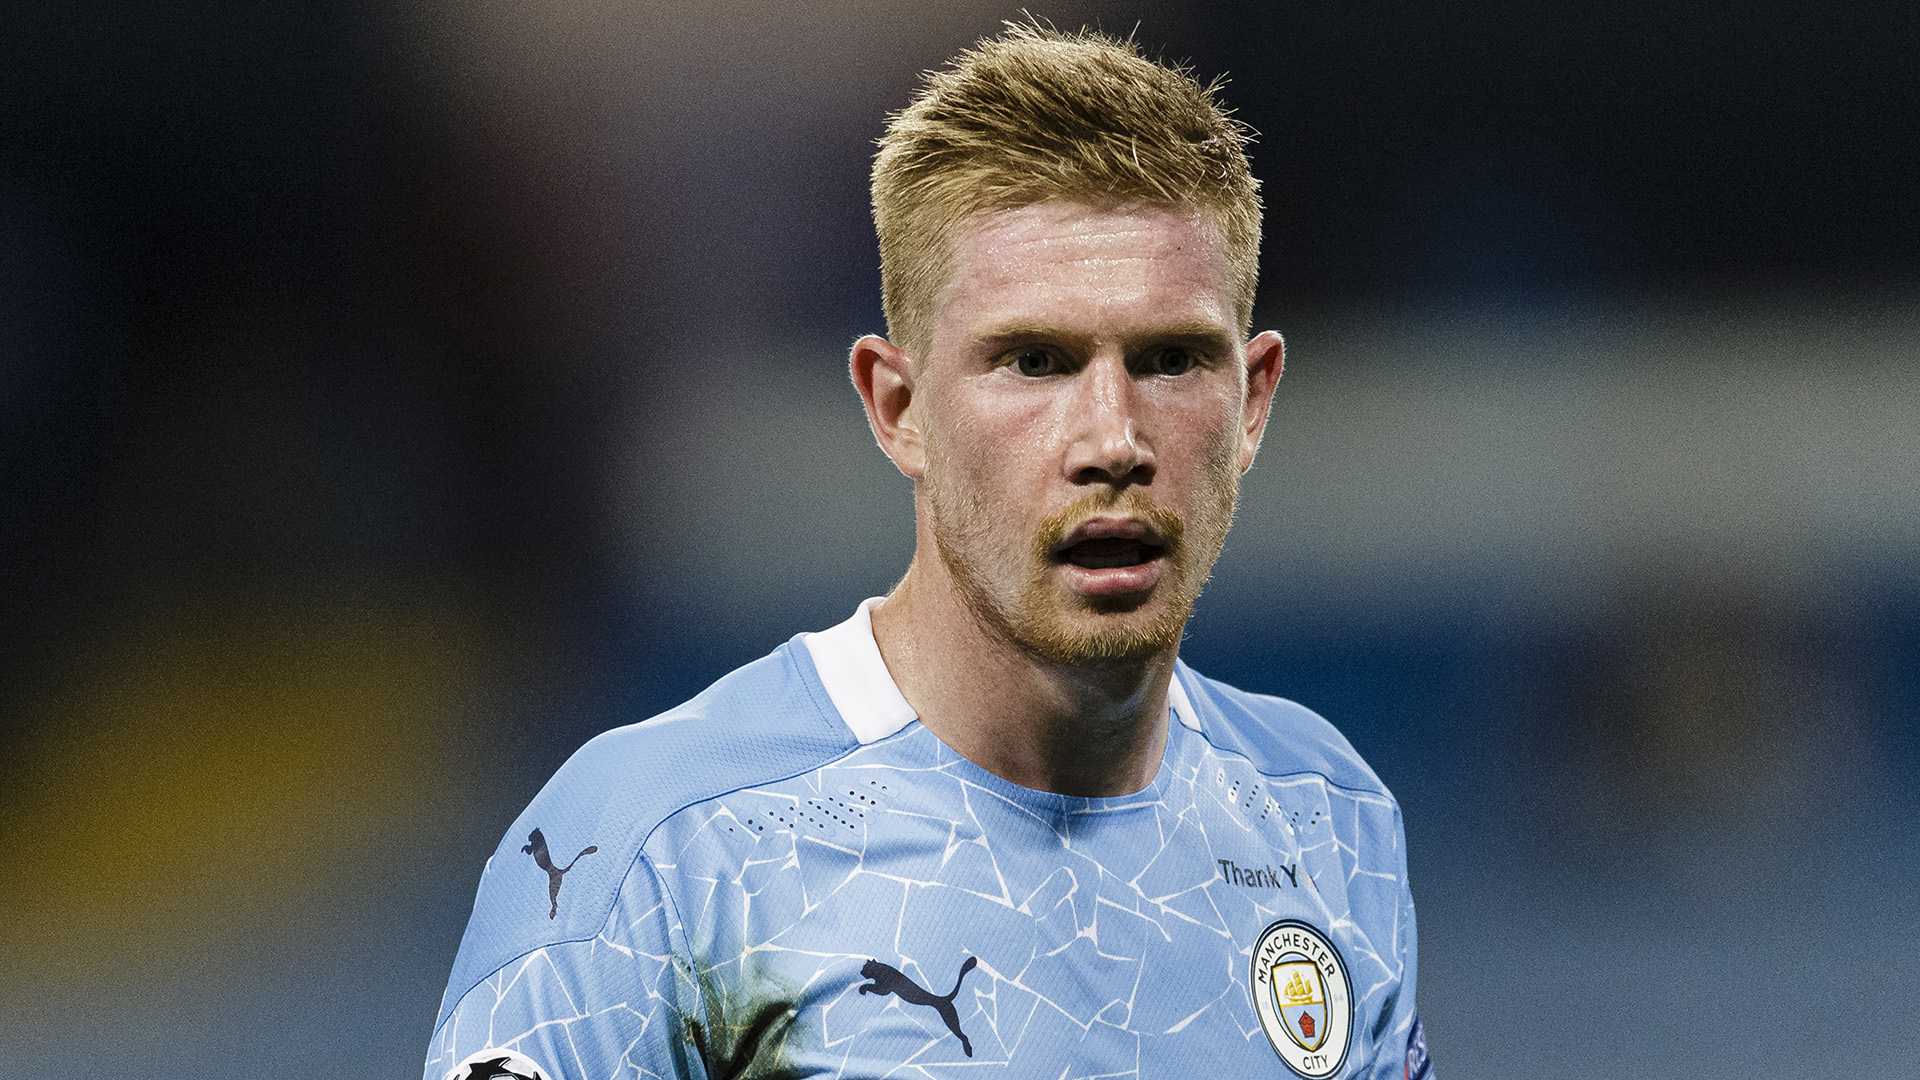 De Bruyne reacts to contract talk & Messi rumours at Man City